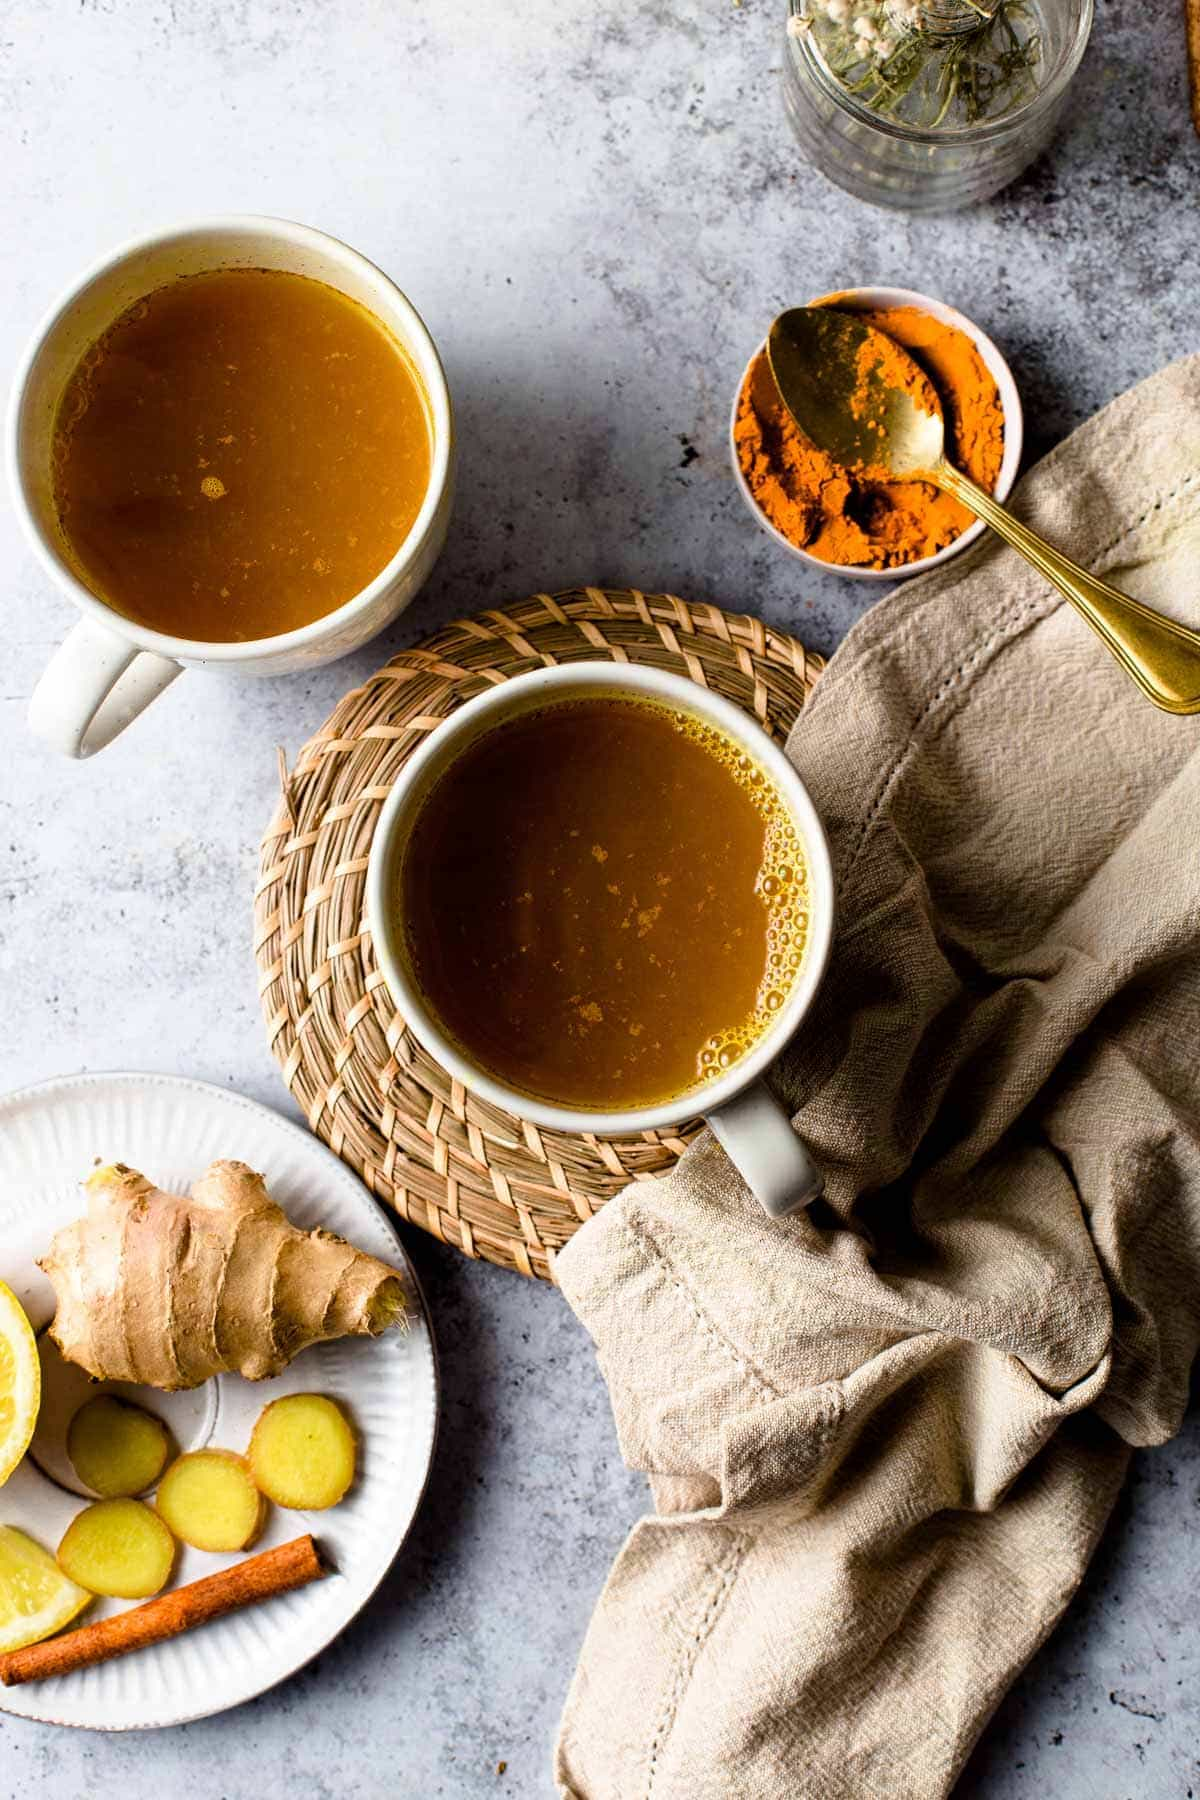 Ginger turmeric lemon tea placed next to a napkin and a small plate.